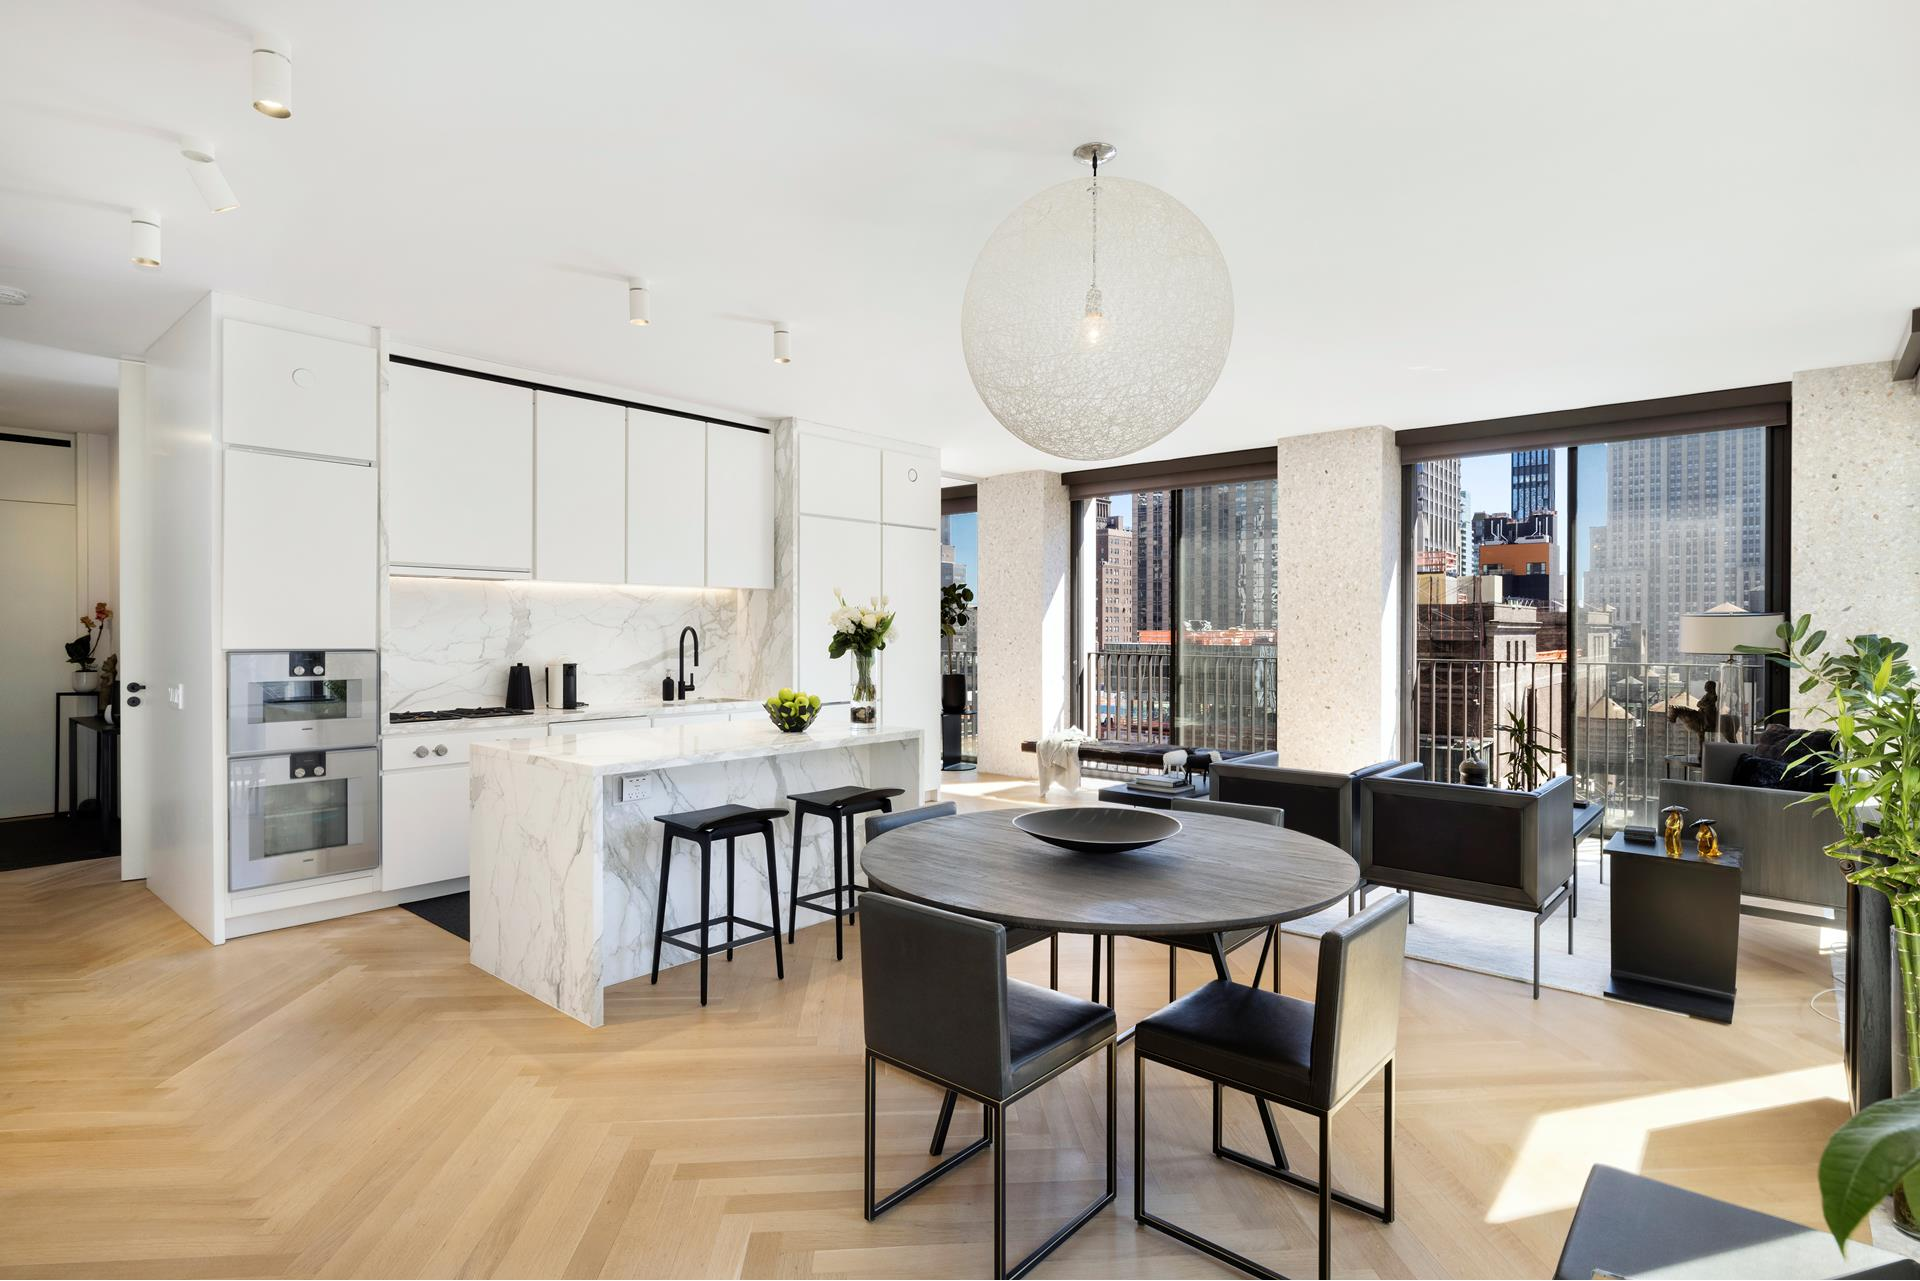 Welcome home to The Bryant! This 1,329 sq ft corner 2 bed 2.5 bath offers an abundance of natural light through 14 floor-to-ceiling windows that open completely on the south side to Juliet balconies - overlooking an amazing view of the Empire State Building.    The custom terrazzo facade transitions seamlessly into the interiors, creating crisp architectural frames to the windows and a border for the heated oak herringbone floors. The residence's bespoke millwork, designed by David Chipperfield Architects exclusively   for The Bryant, cleverly conceals storage, appliances, and mechanical systems, allowing continuous, almost 10 ft ceiling heights to carry throughout. The split bedrooms offer privacy and all windows have been outfitted with electric shades!    The open kitchen includes full suite of Gaggenau appliances with fully-vented range hood. The kitchen also includes a waterfall island with marble top, wine refrigerator and overhang for seating. The primary bath features full height Statuarietto marble walls,   double vanity with marble top, and enclosed wet room with rain shower. The secondary bath and powder room are also appointed with Statuarietto marble walls and vanity.    The residences are located above a boutique hotel and amenities include 24-hour attended private residential lobby, lobby lounge, fitness center with sauna, Terrace Club with fireplace and full bar overlooking Bryant Park, and a full suite of a la carte hotel   services including housekeeping and room service.